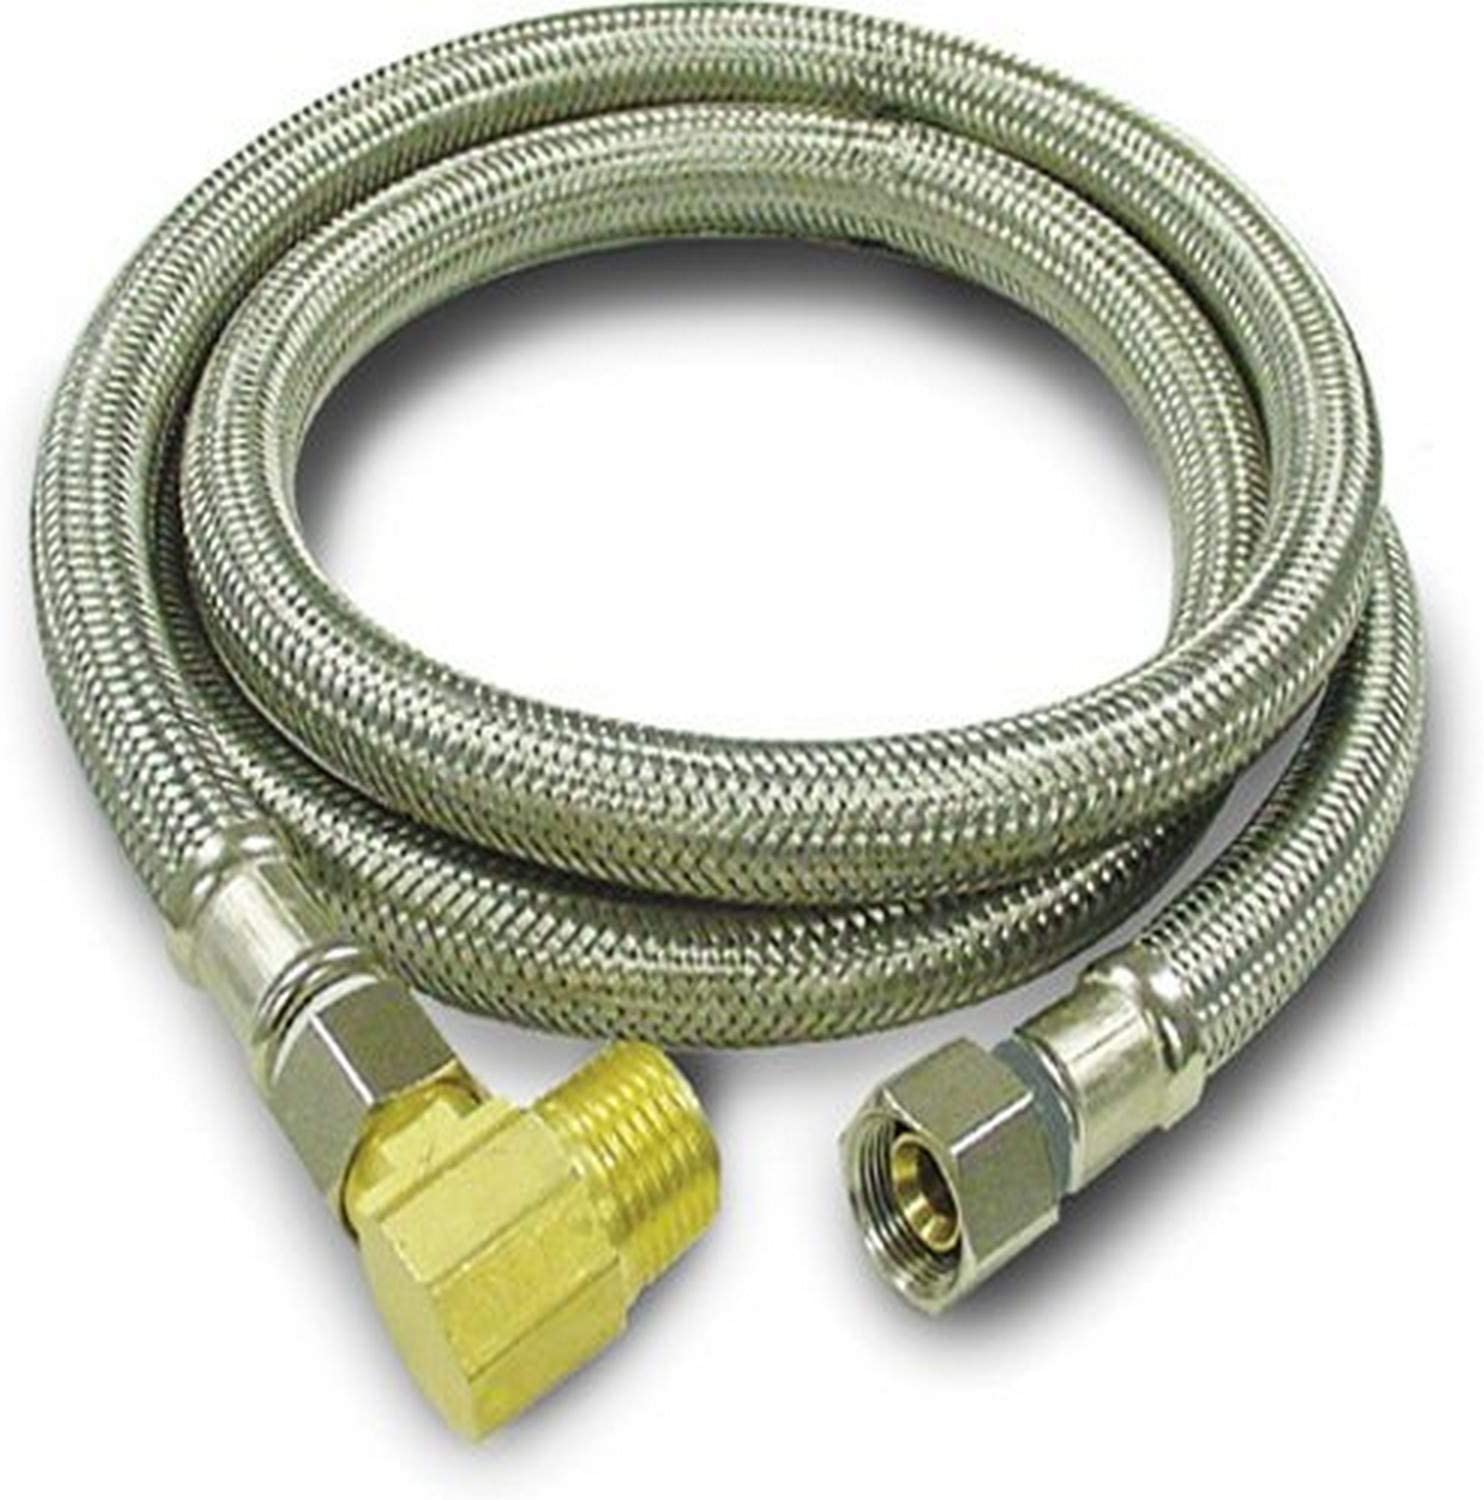 Kissler 88-2072 Braided Dishwasher Connector, 3/8-Inch by 3/8-Inch w/ 1/2-Inch Elbow, Stainless Steel